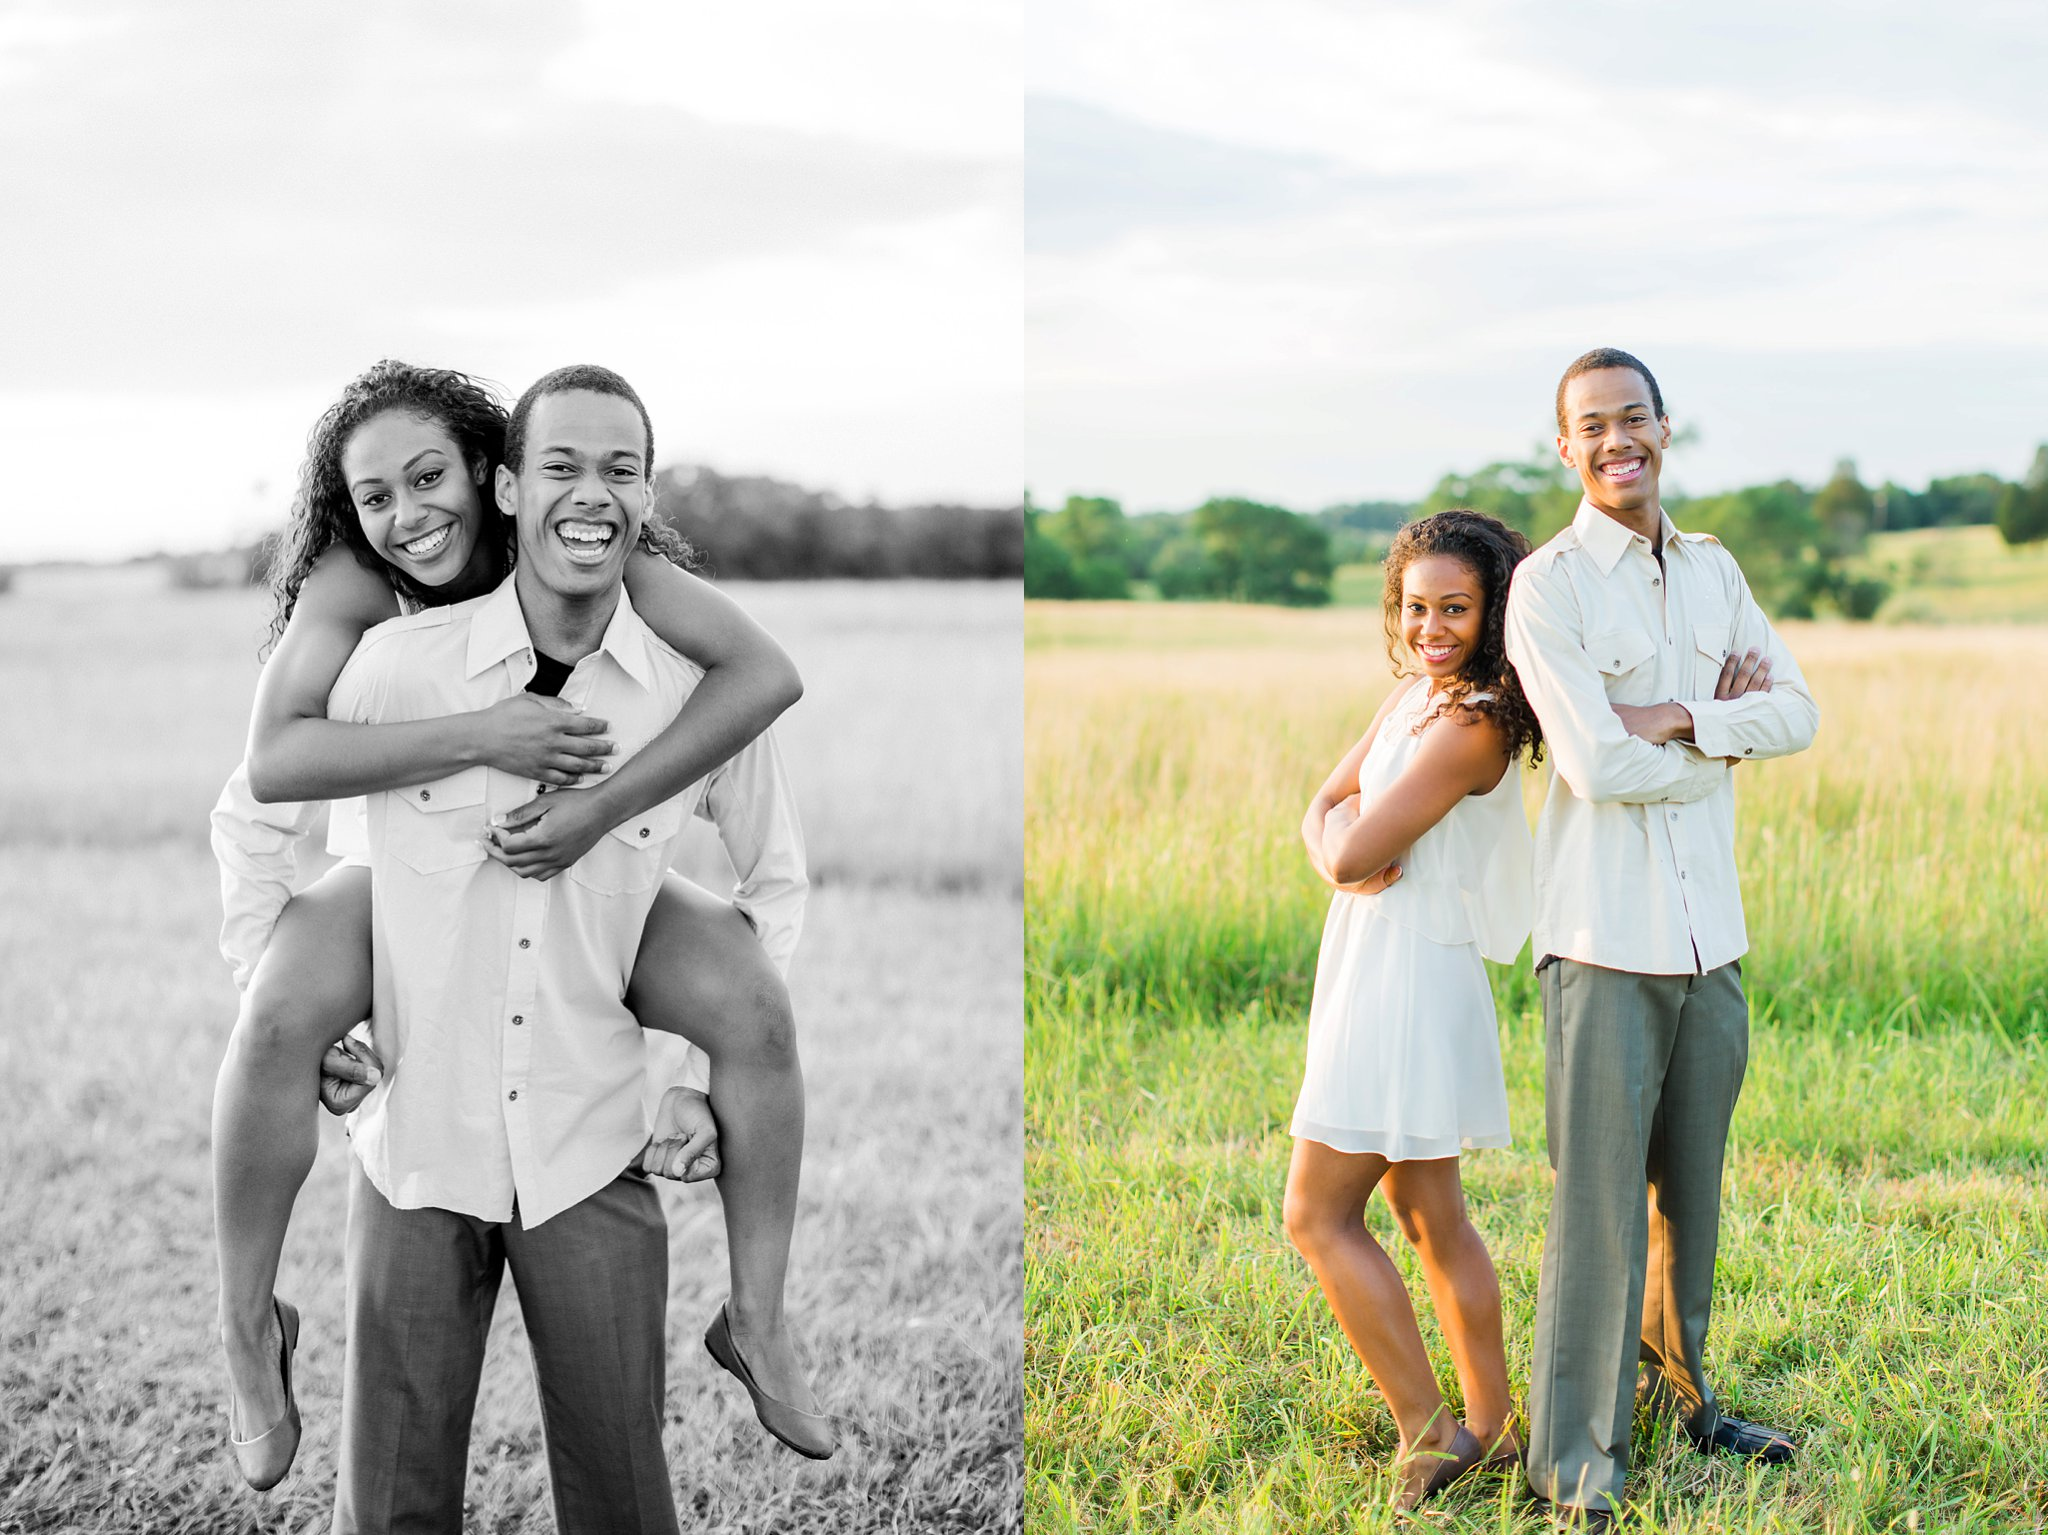 Manassas Battlefield Family Photos Northern Virginia Family Photographer Megan Kelsey Photography-8507-2.jpg